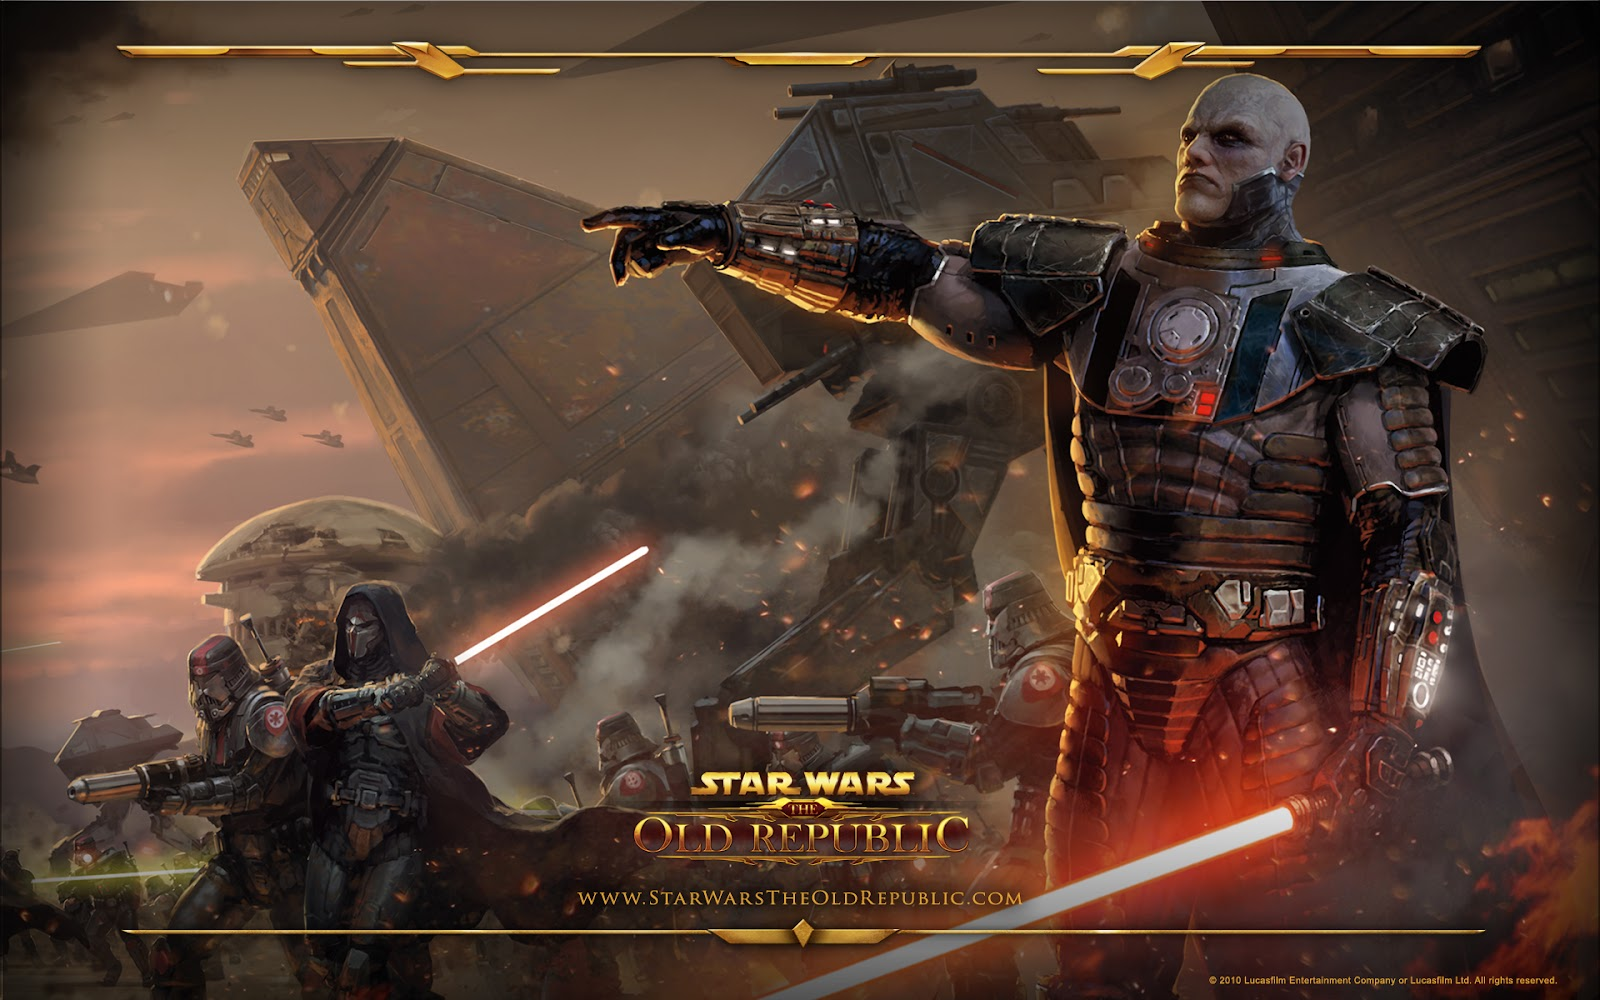 http://1.bp.blogspot.com/-ZxuGva5wLt4/TjGj7ToygcI/AAAAAAAAYrQ/agY8G3yIEhE/s1600/Star+Wars+-+The+Old+Republic+Wallpapers+%252813%2529.jpg